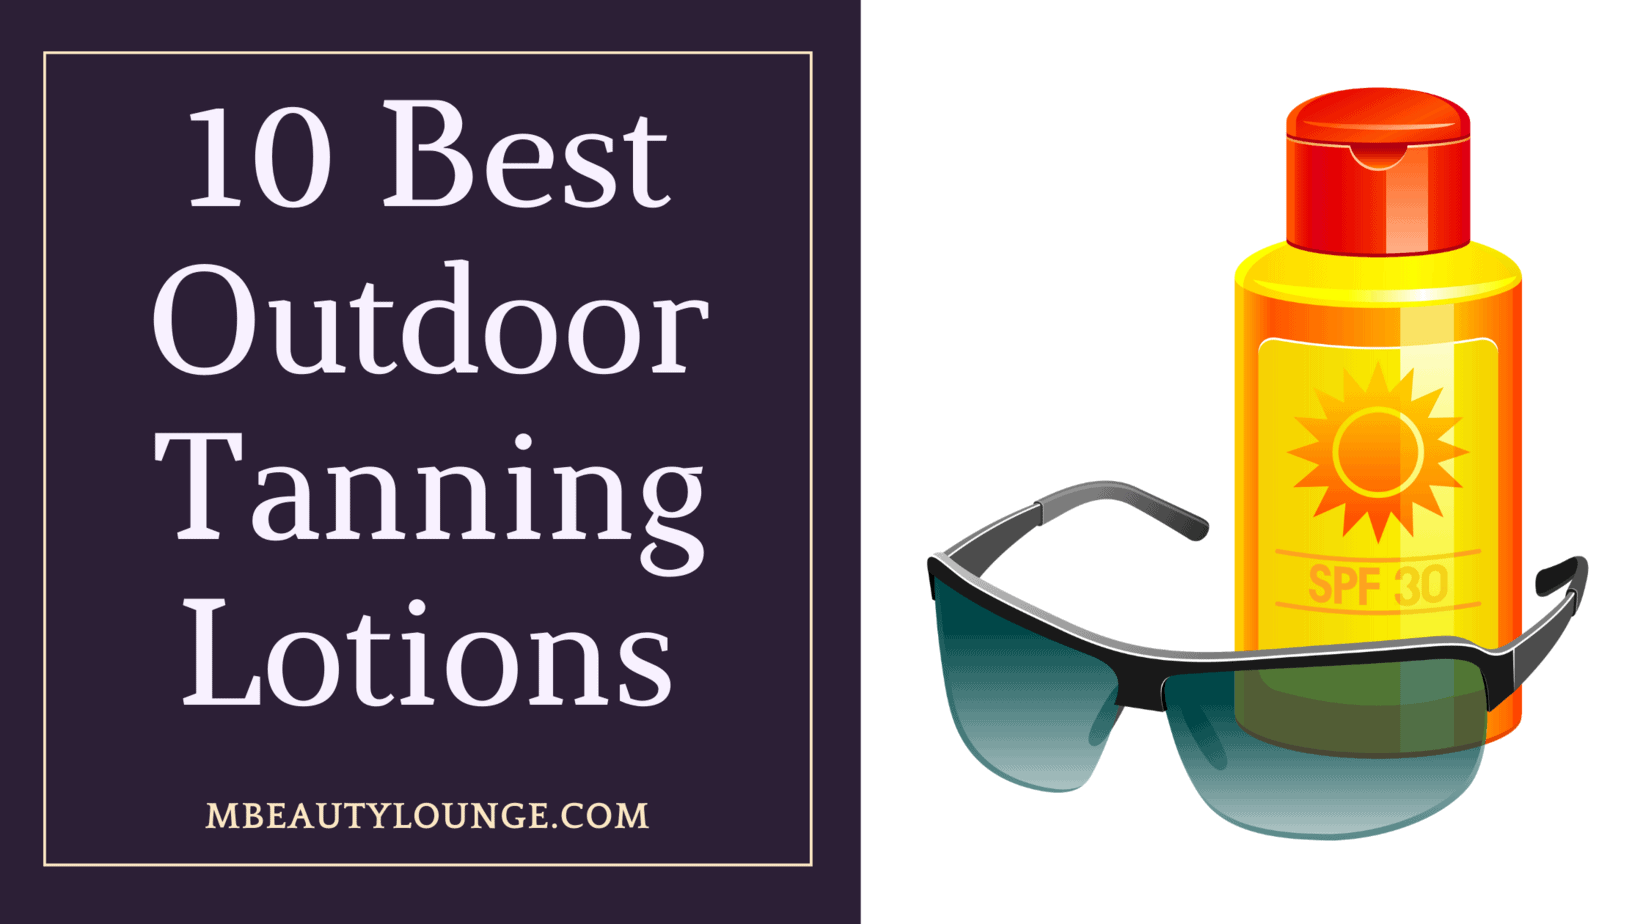 10 Best Outdoor Tanning Lotions